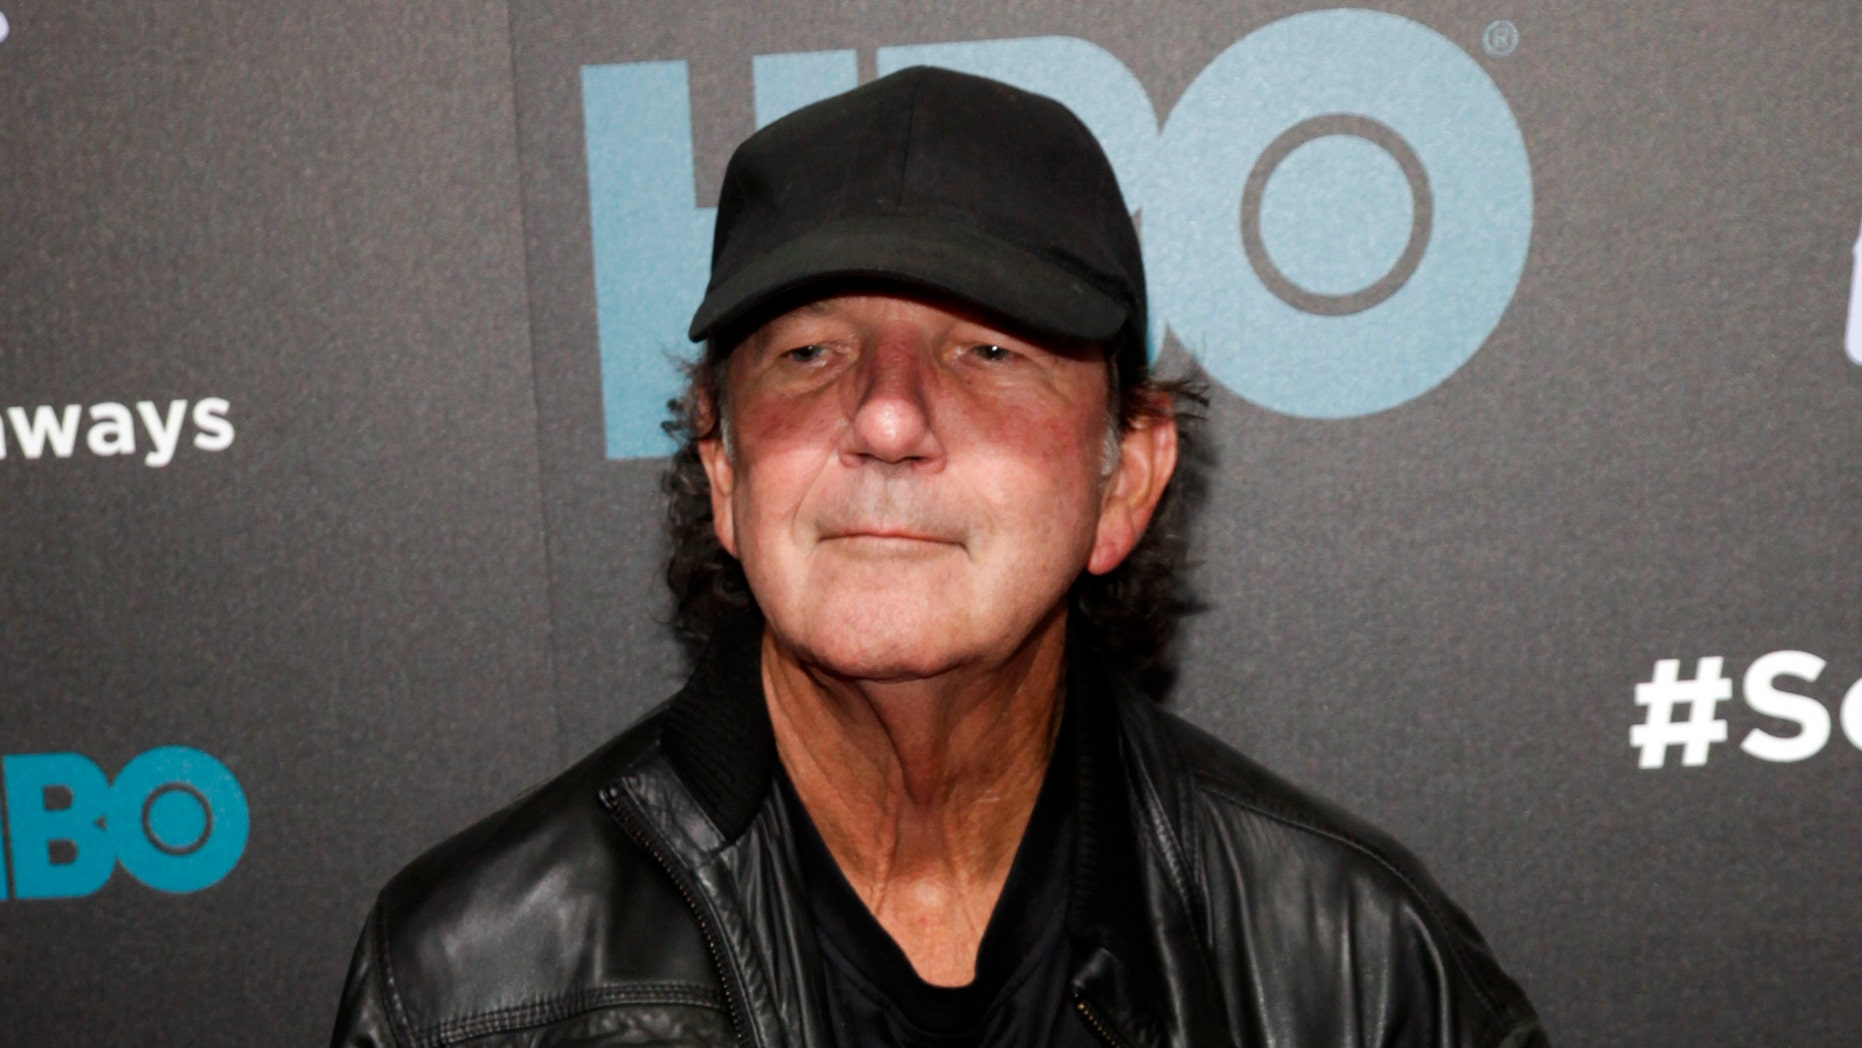 Tony Joe White Dies at Age 75